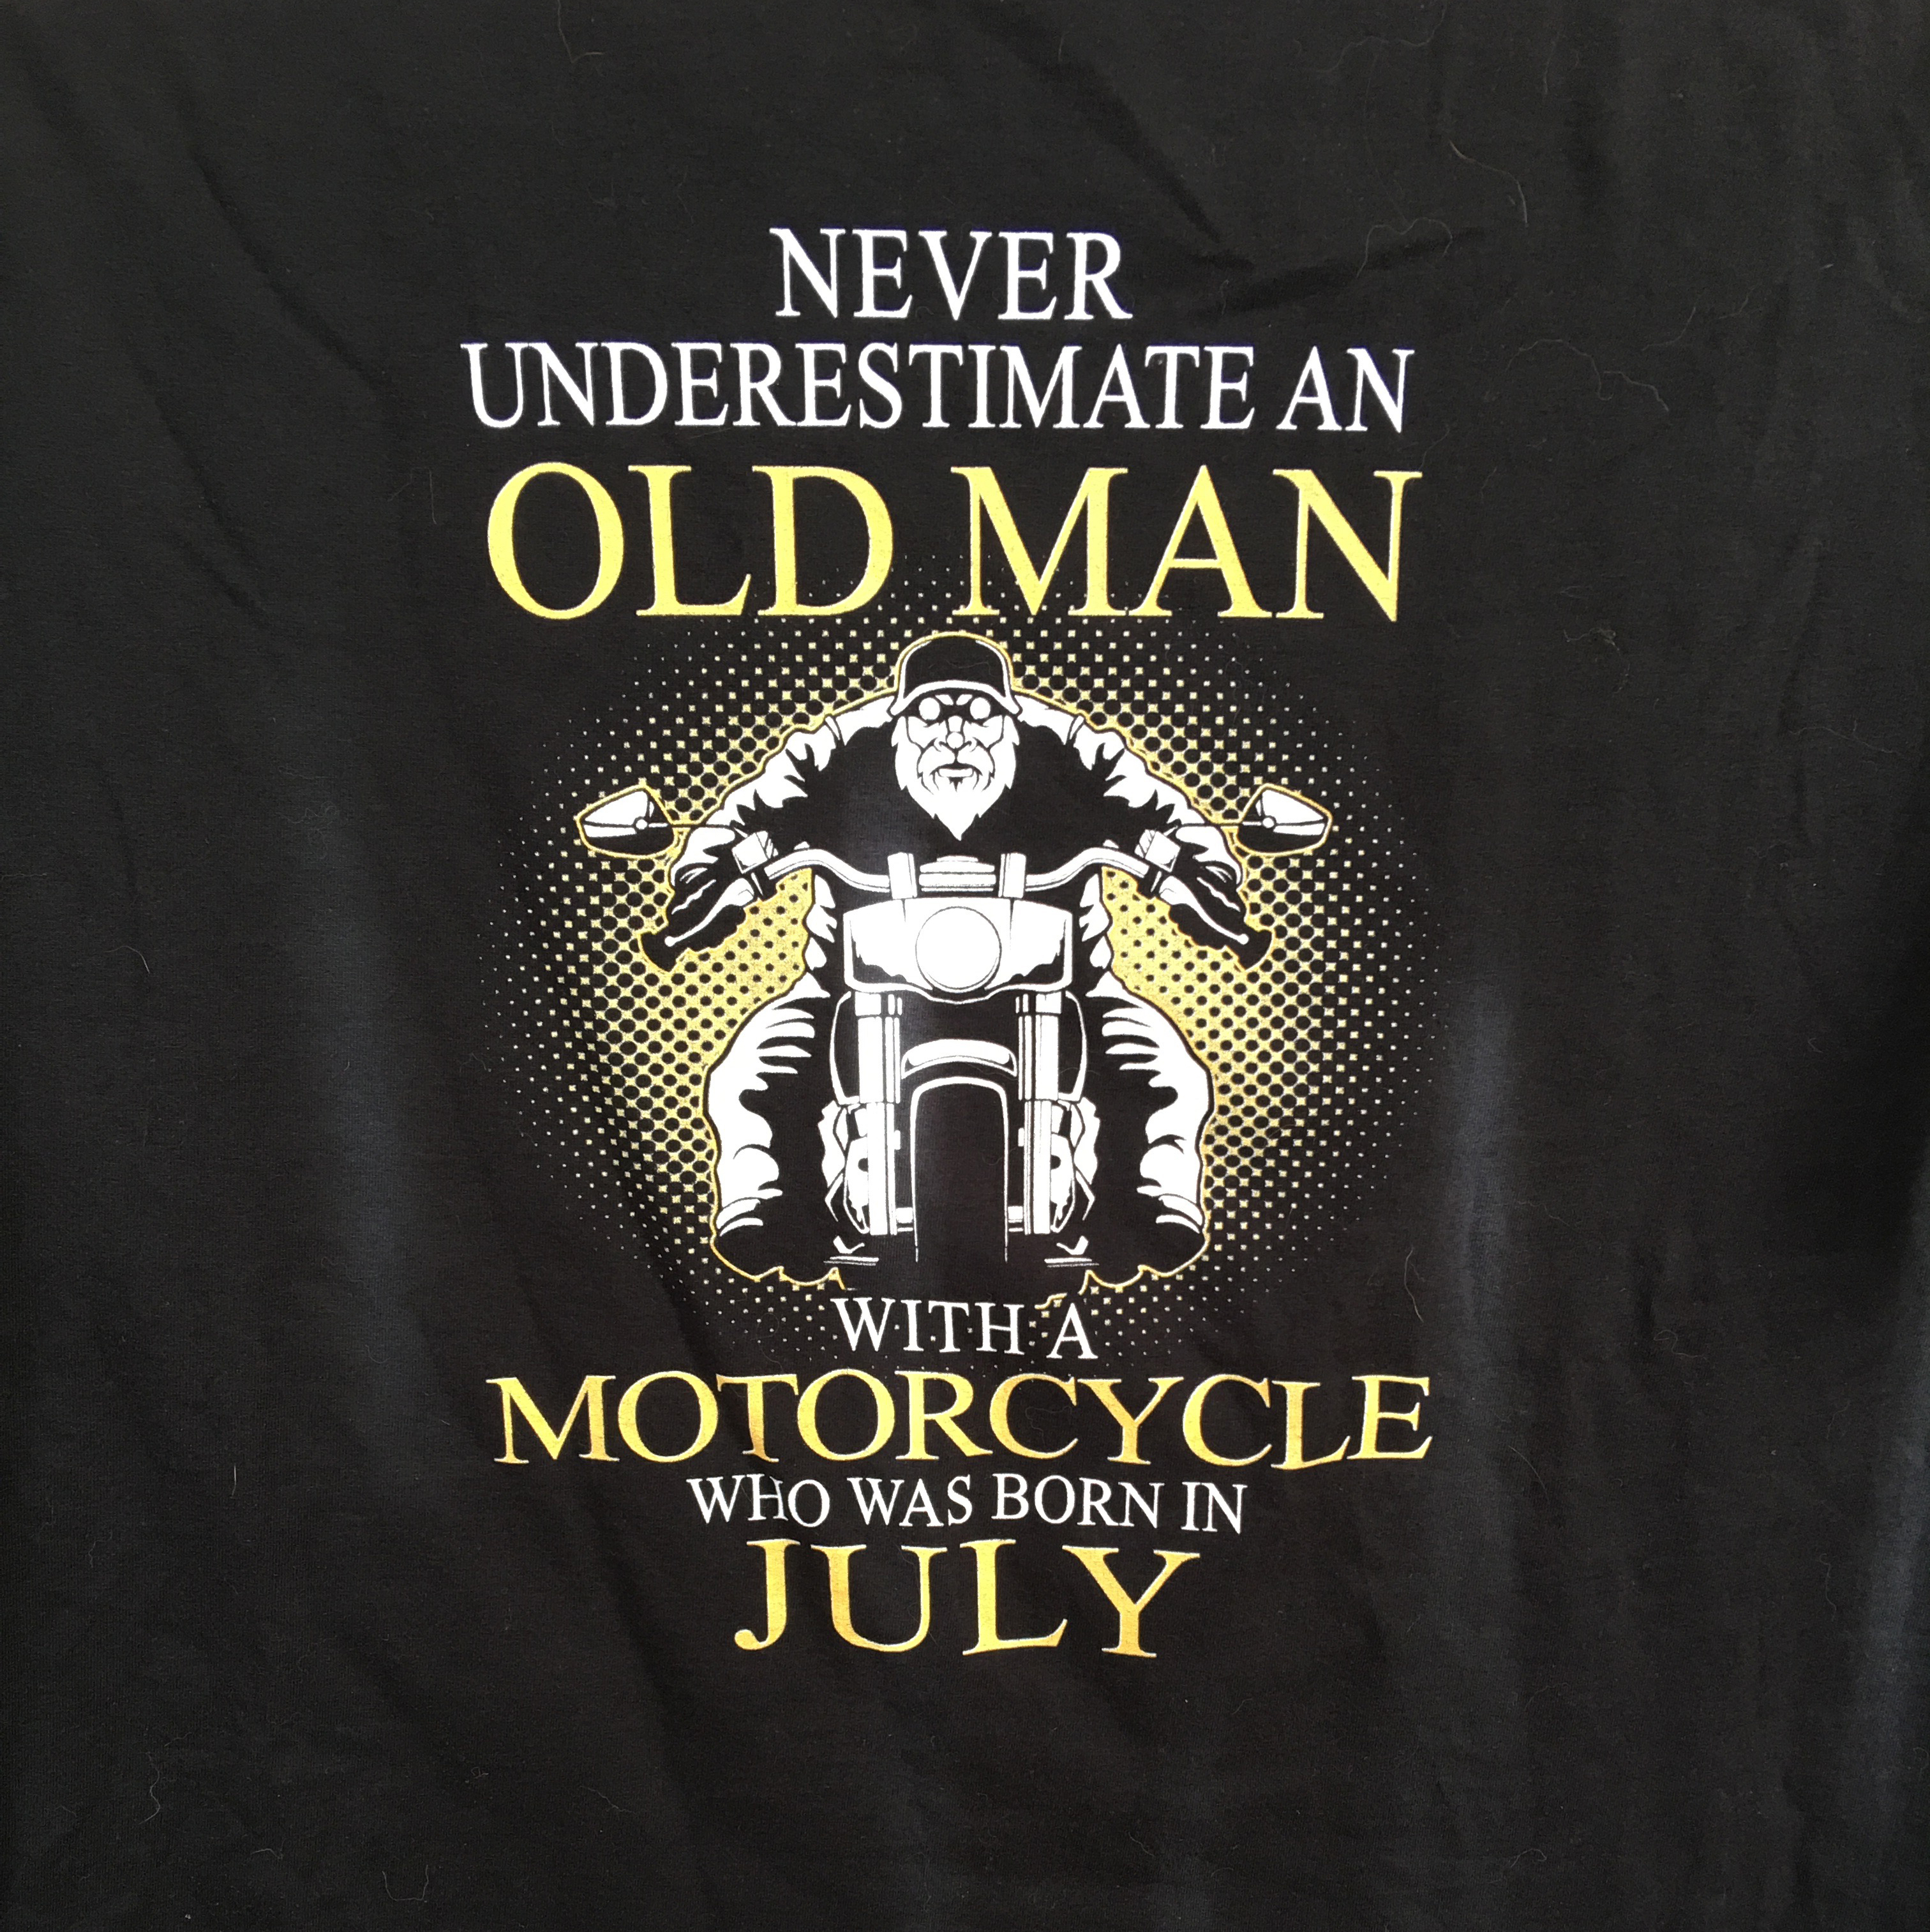 b8c271a92 NEVER UNDERESTIMATE AN OLD MAN WITH A MOTORCYCLE WHO WAS BORN IN ...